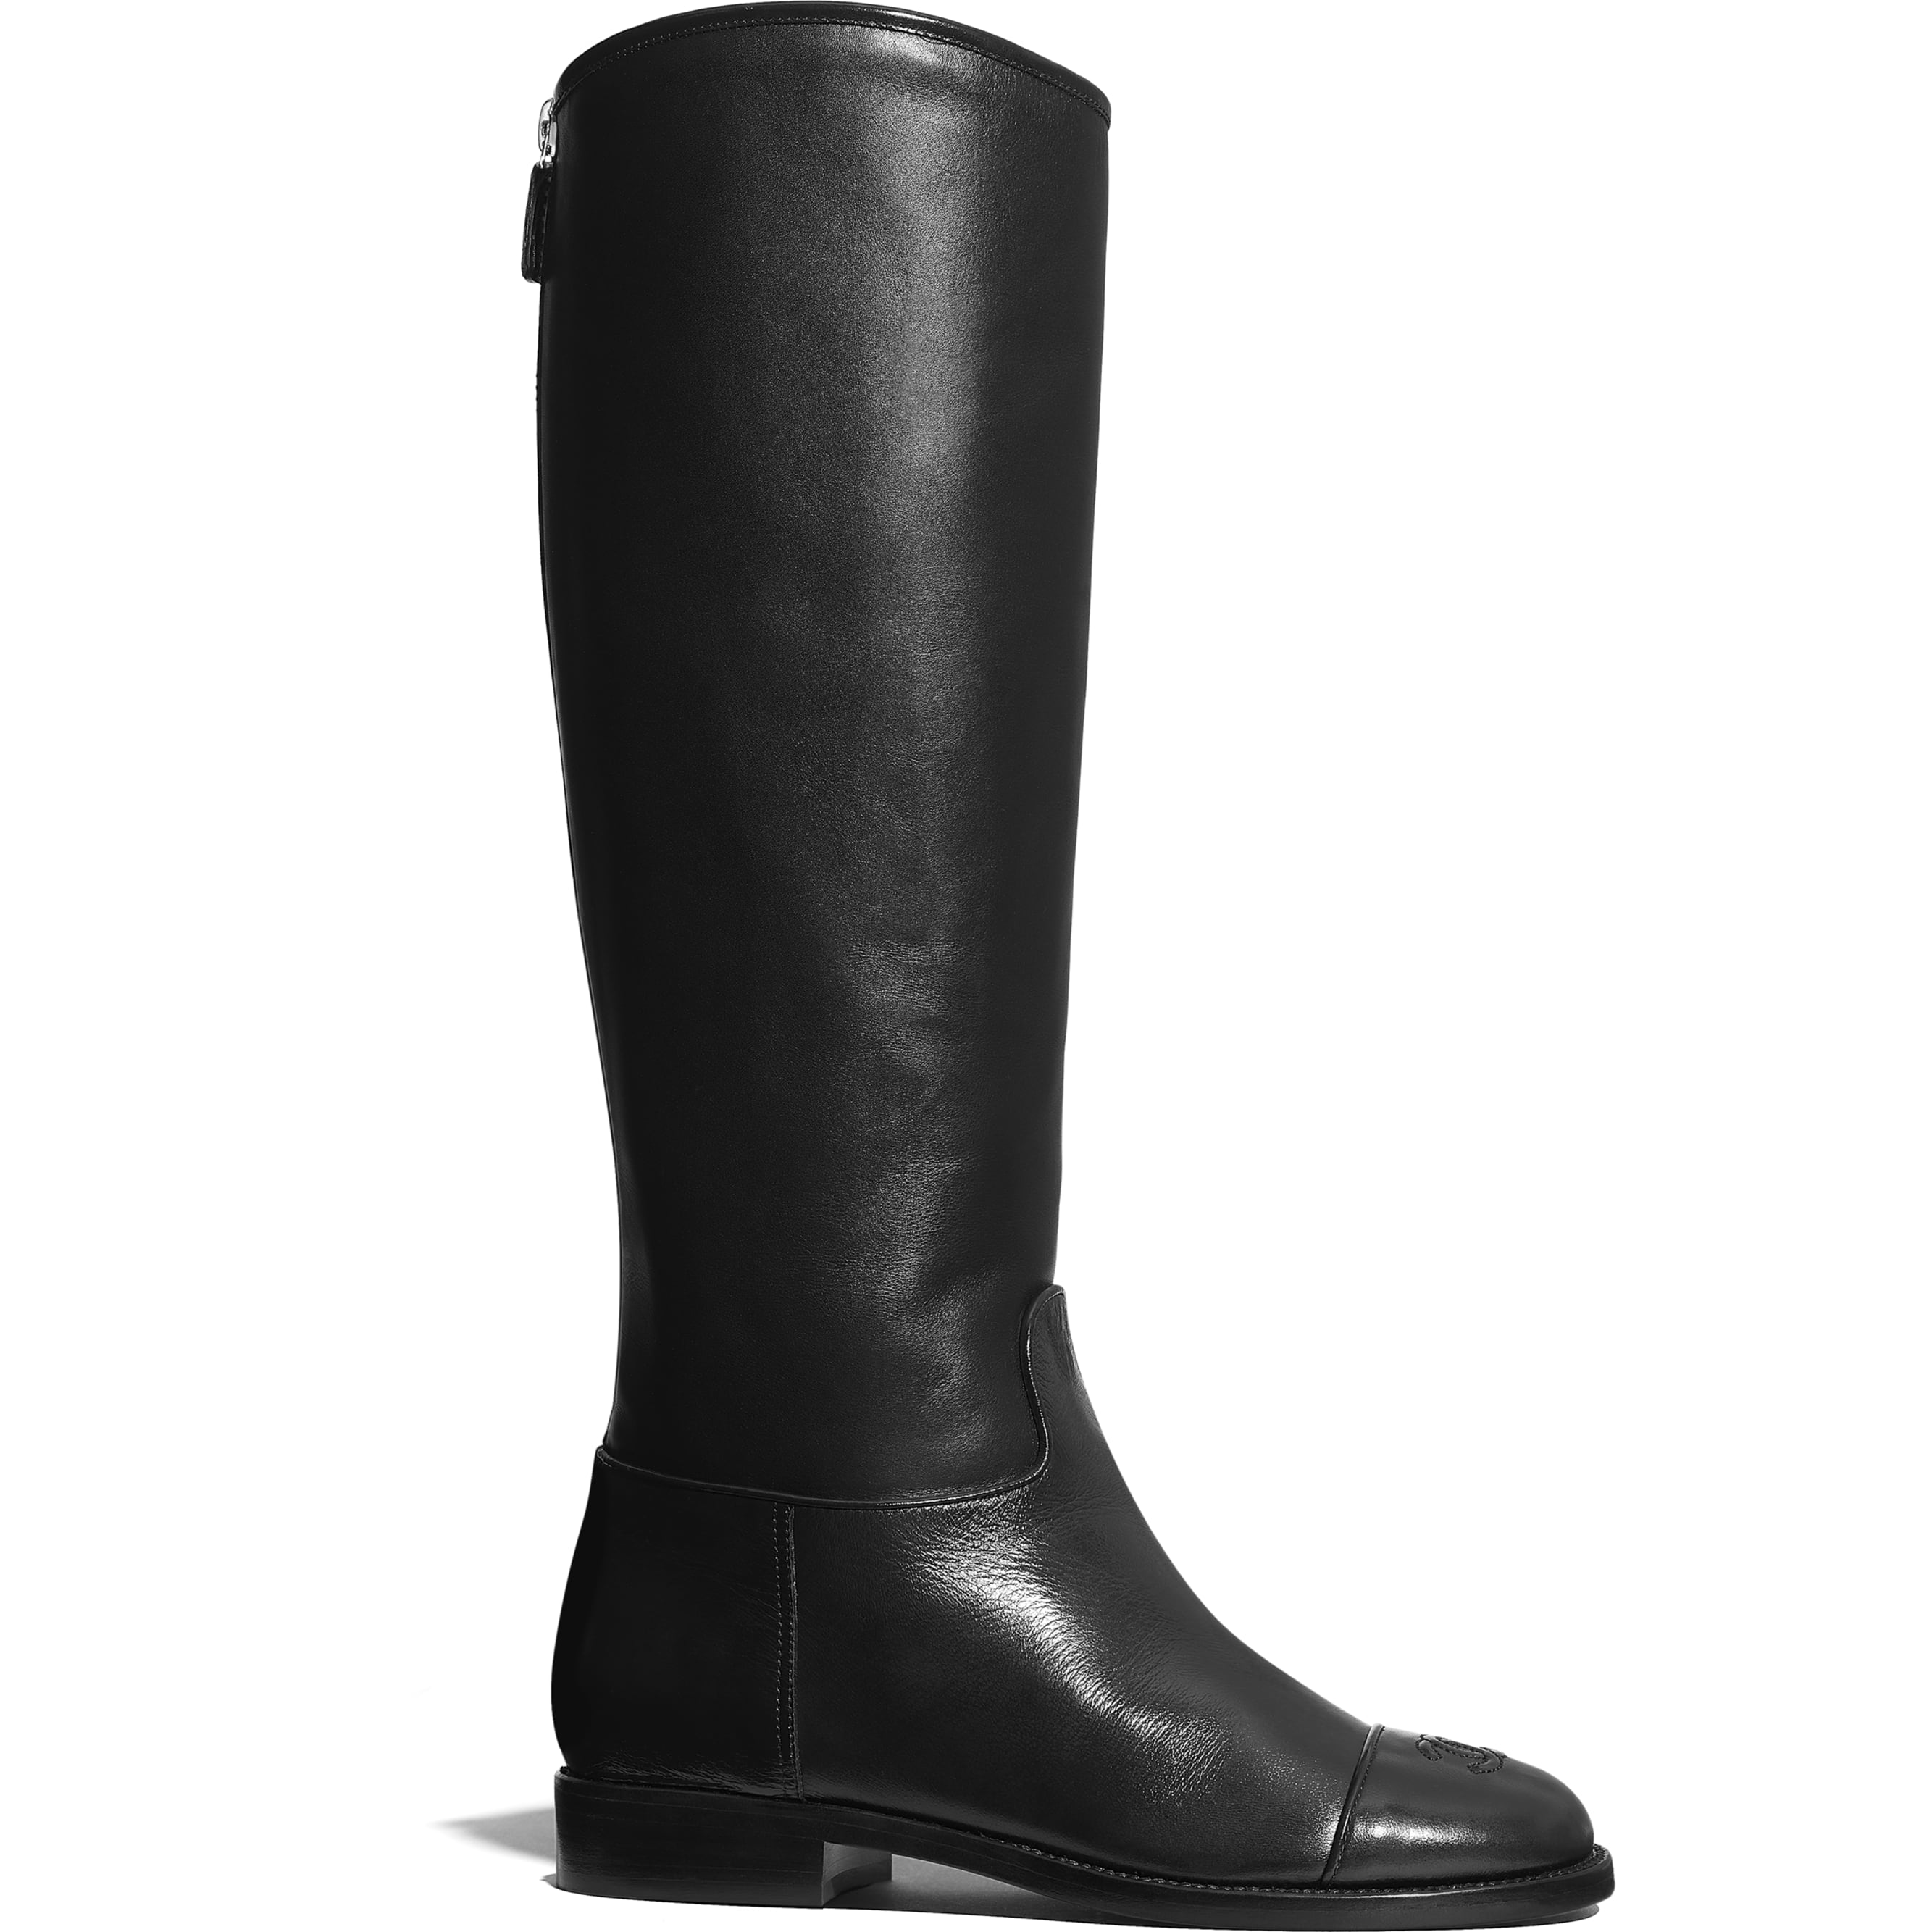 High Boots - Black - Calfskin - Default view - see standard sized version